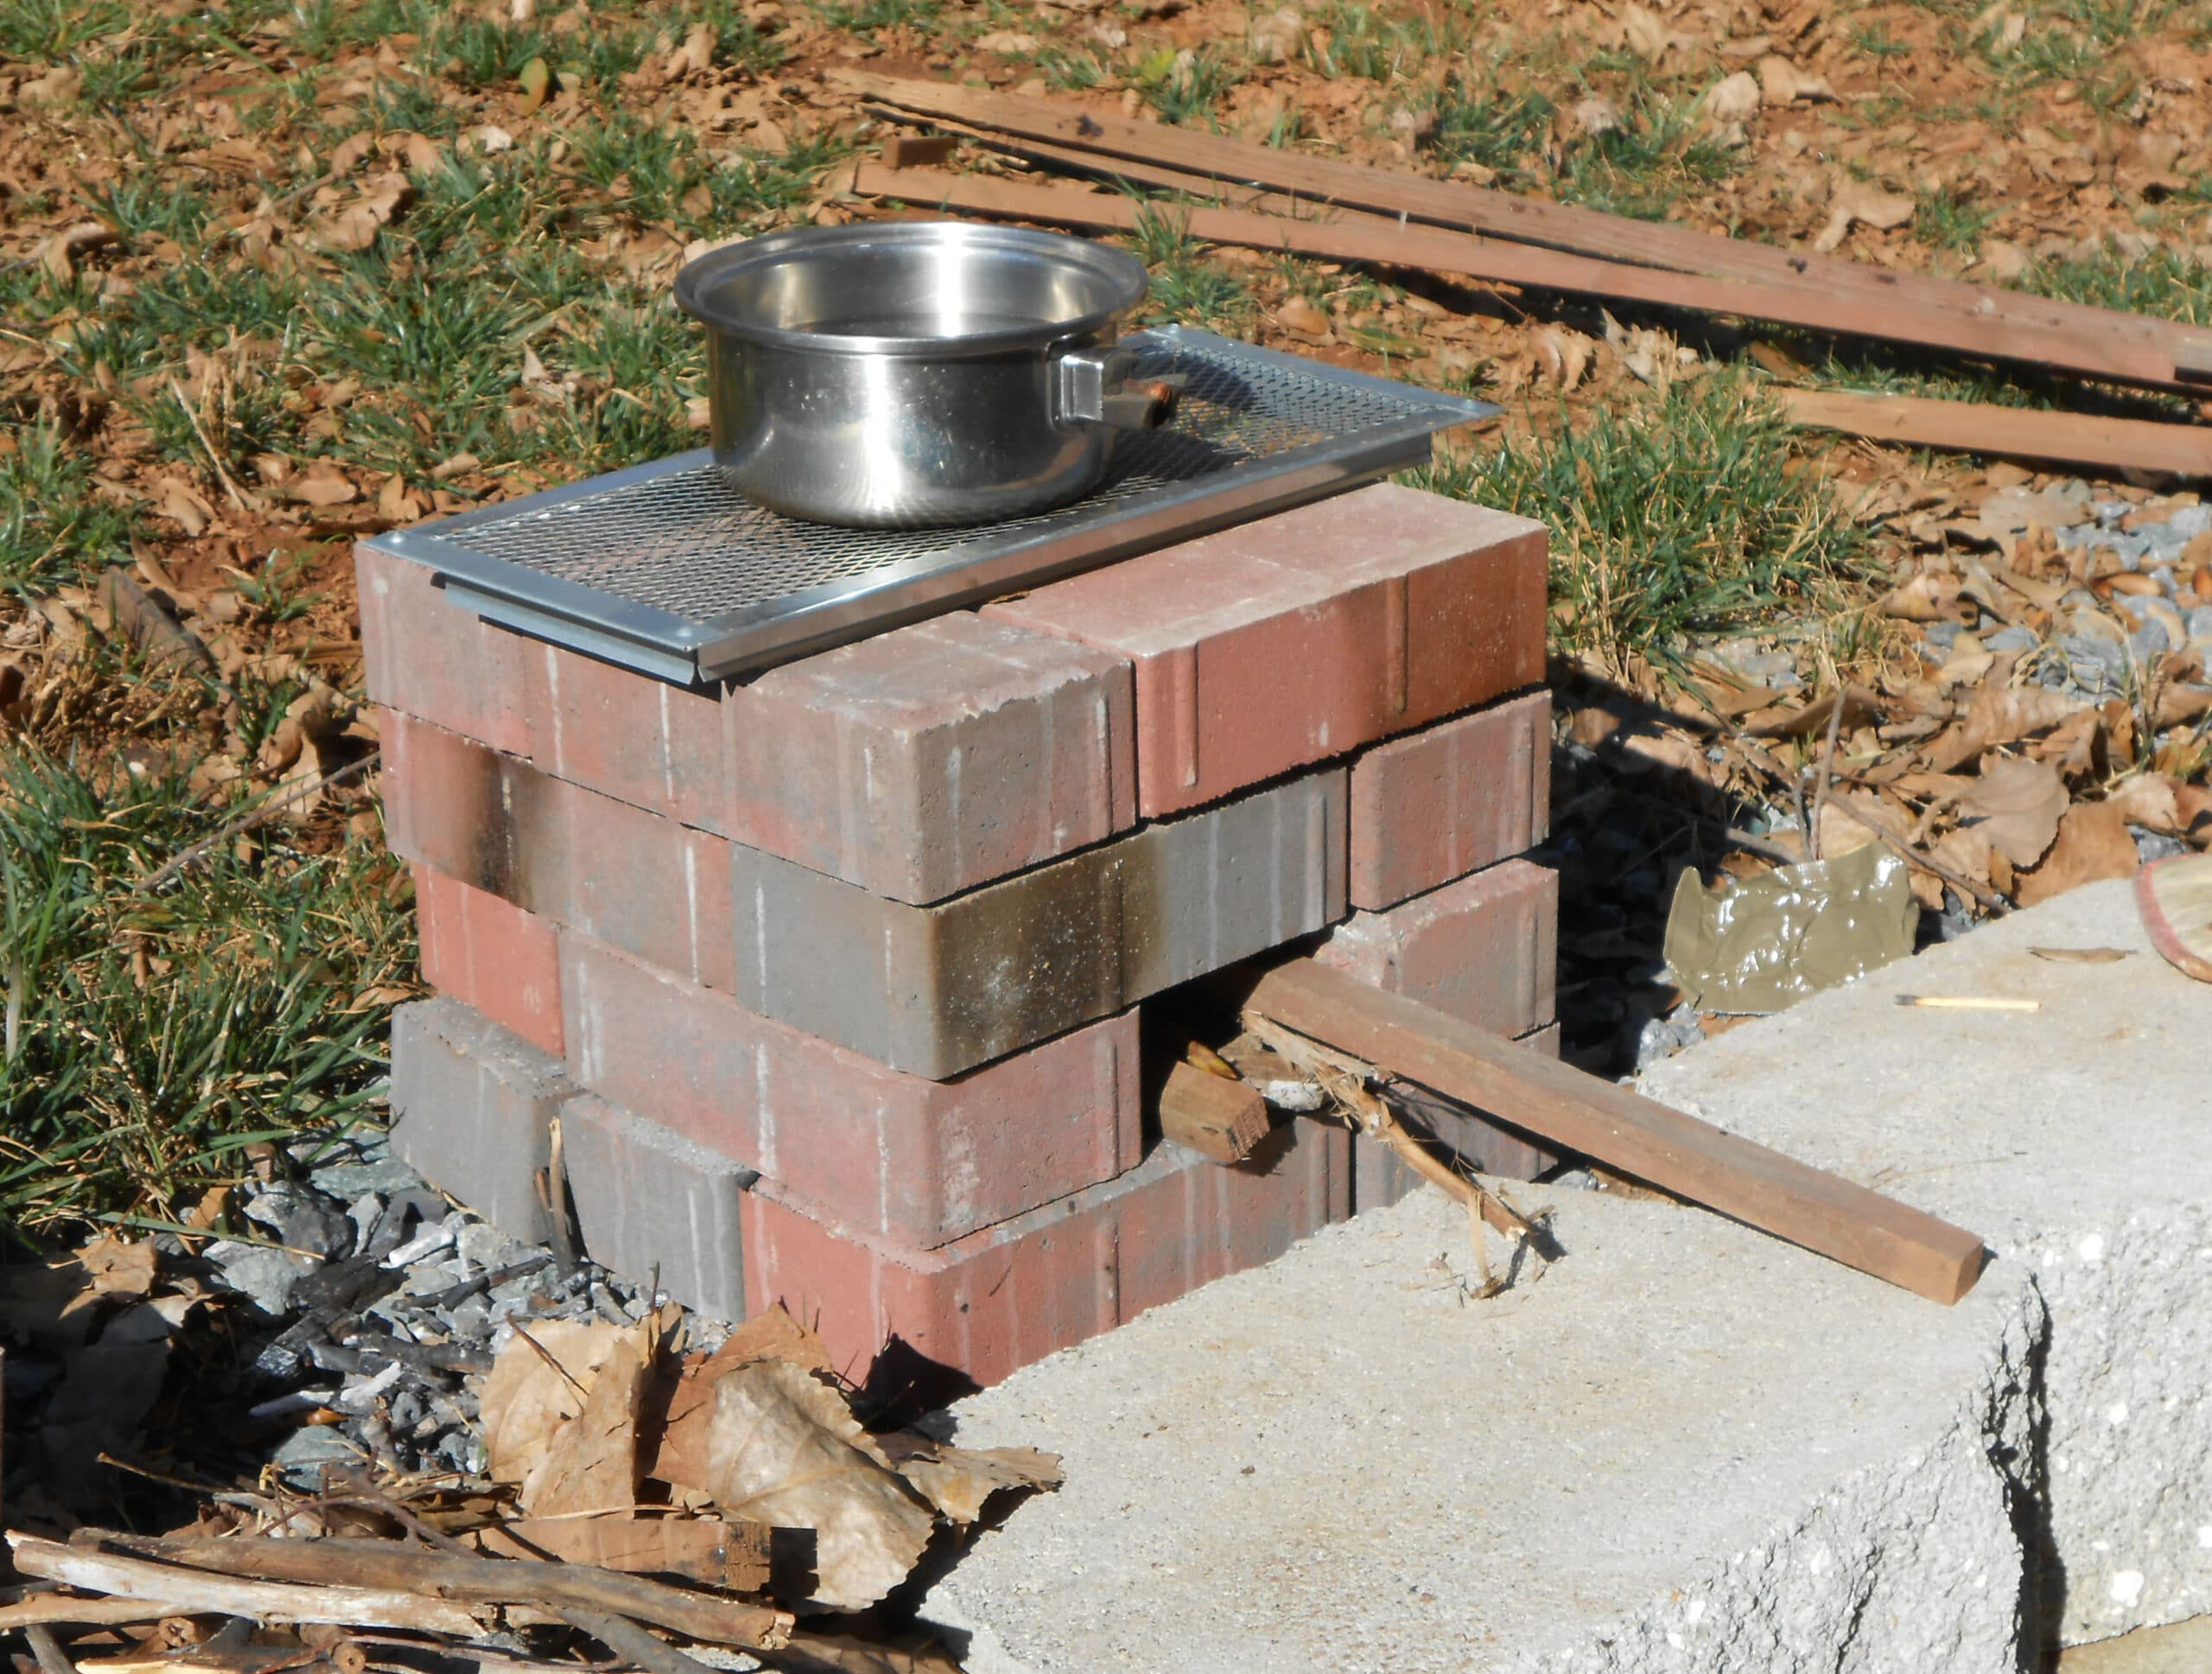 16 brick rocket stove preparedness advicepreparedness advice